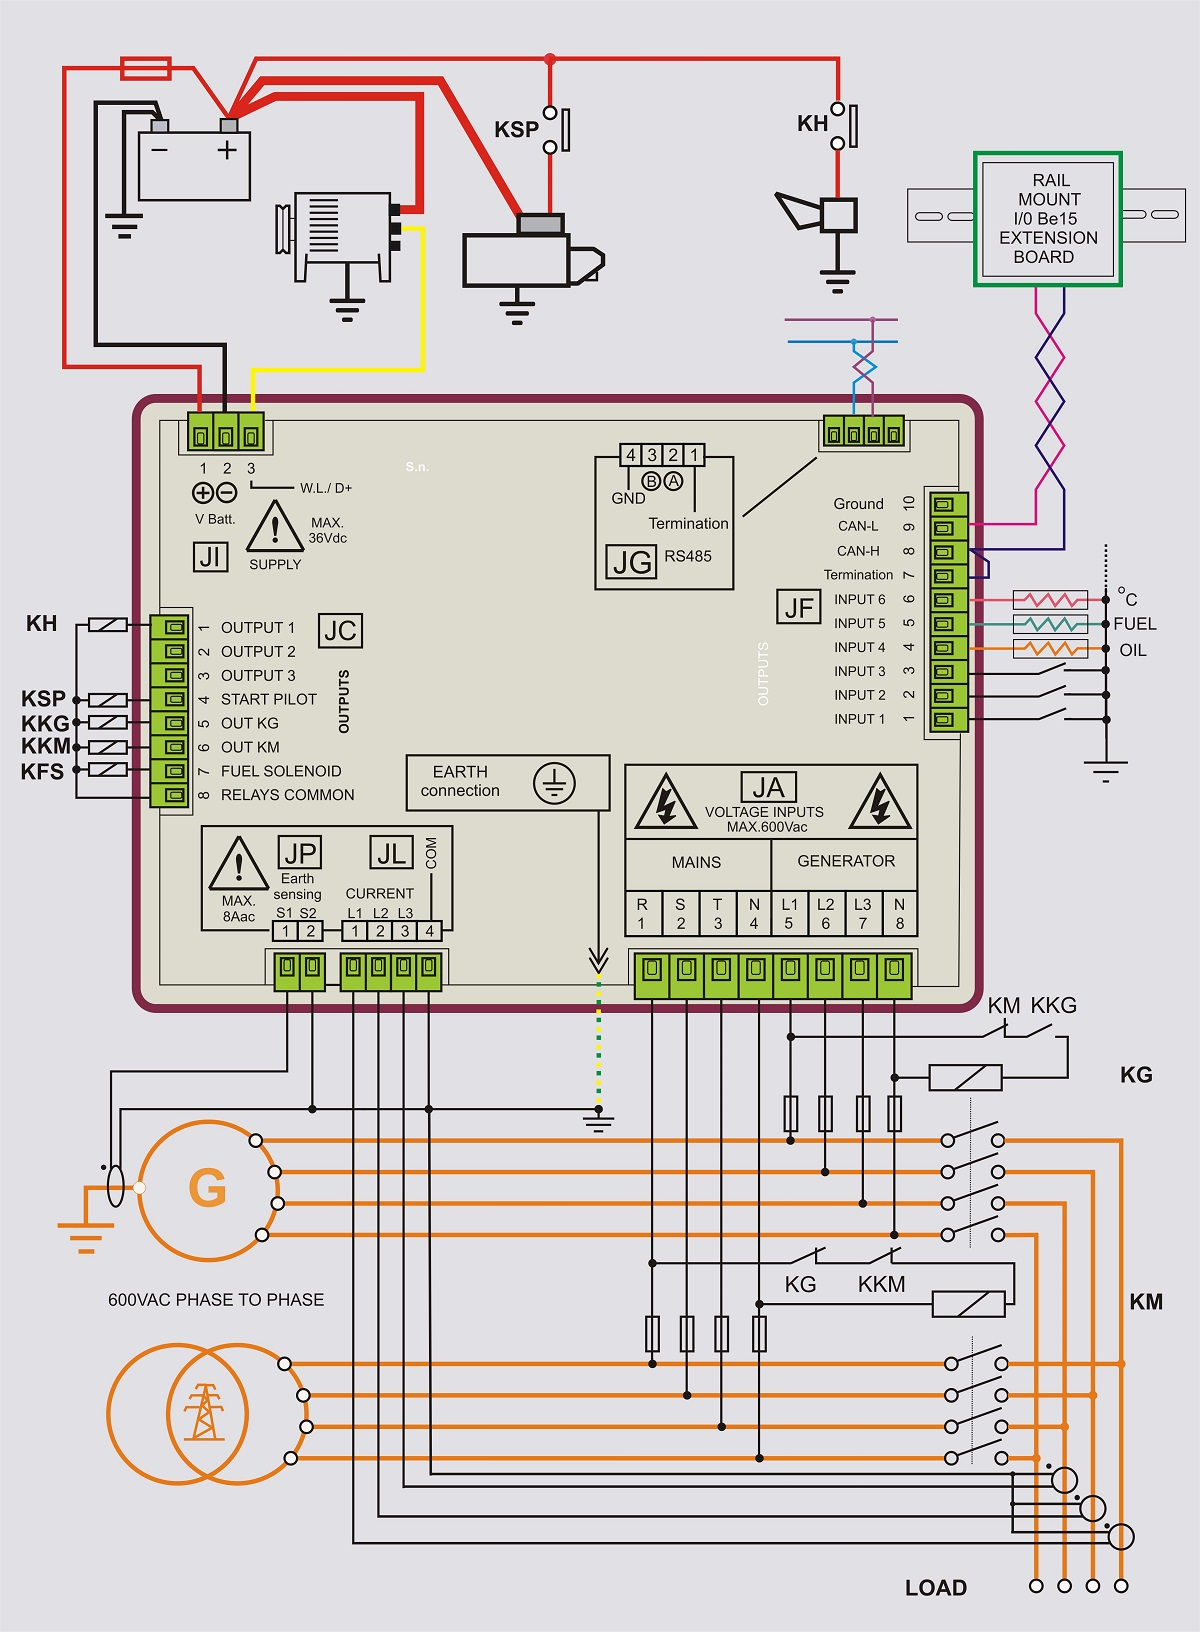 true tuc 27f wiring diagram Download-True Tuc 27F Wiring Diagram Saleexpert Me At Webtor And 2-d